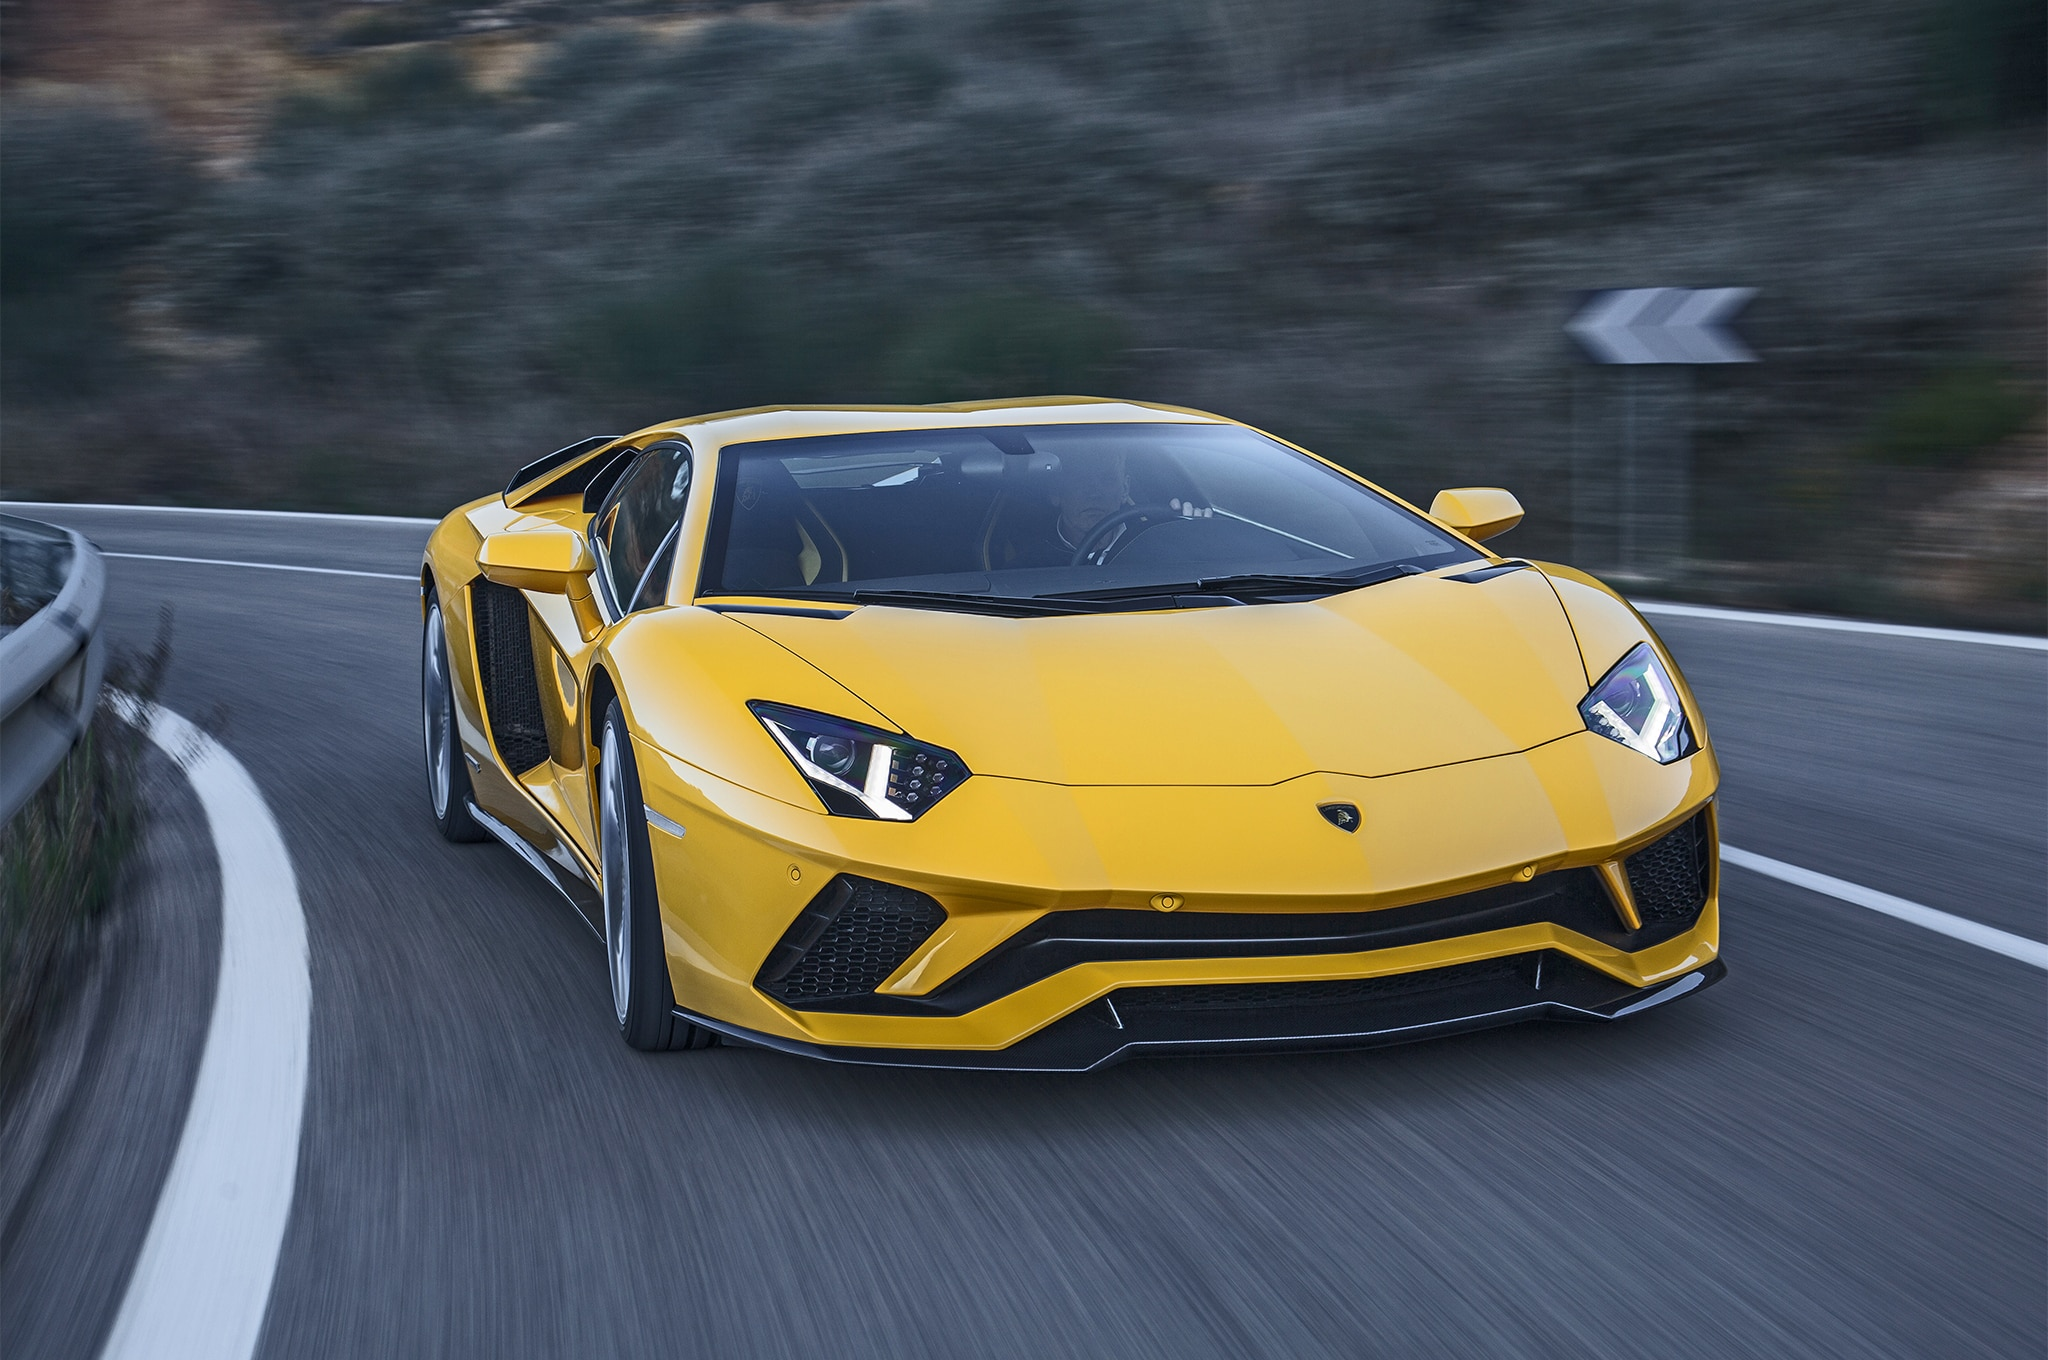 2017 Lamborghini Aventador S Front View In Motion 08